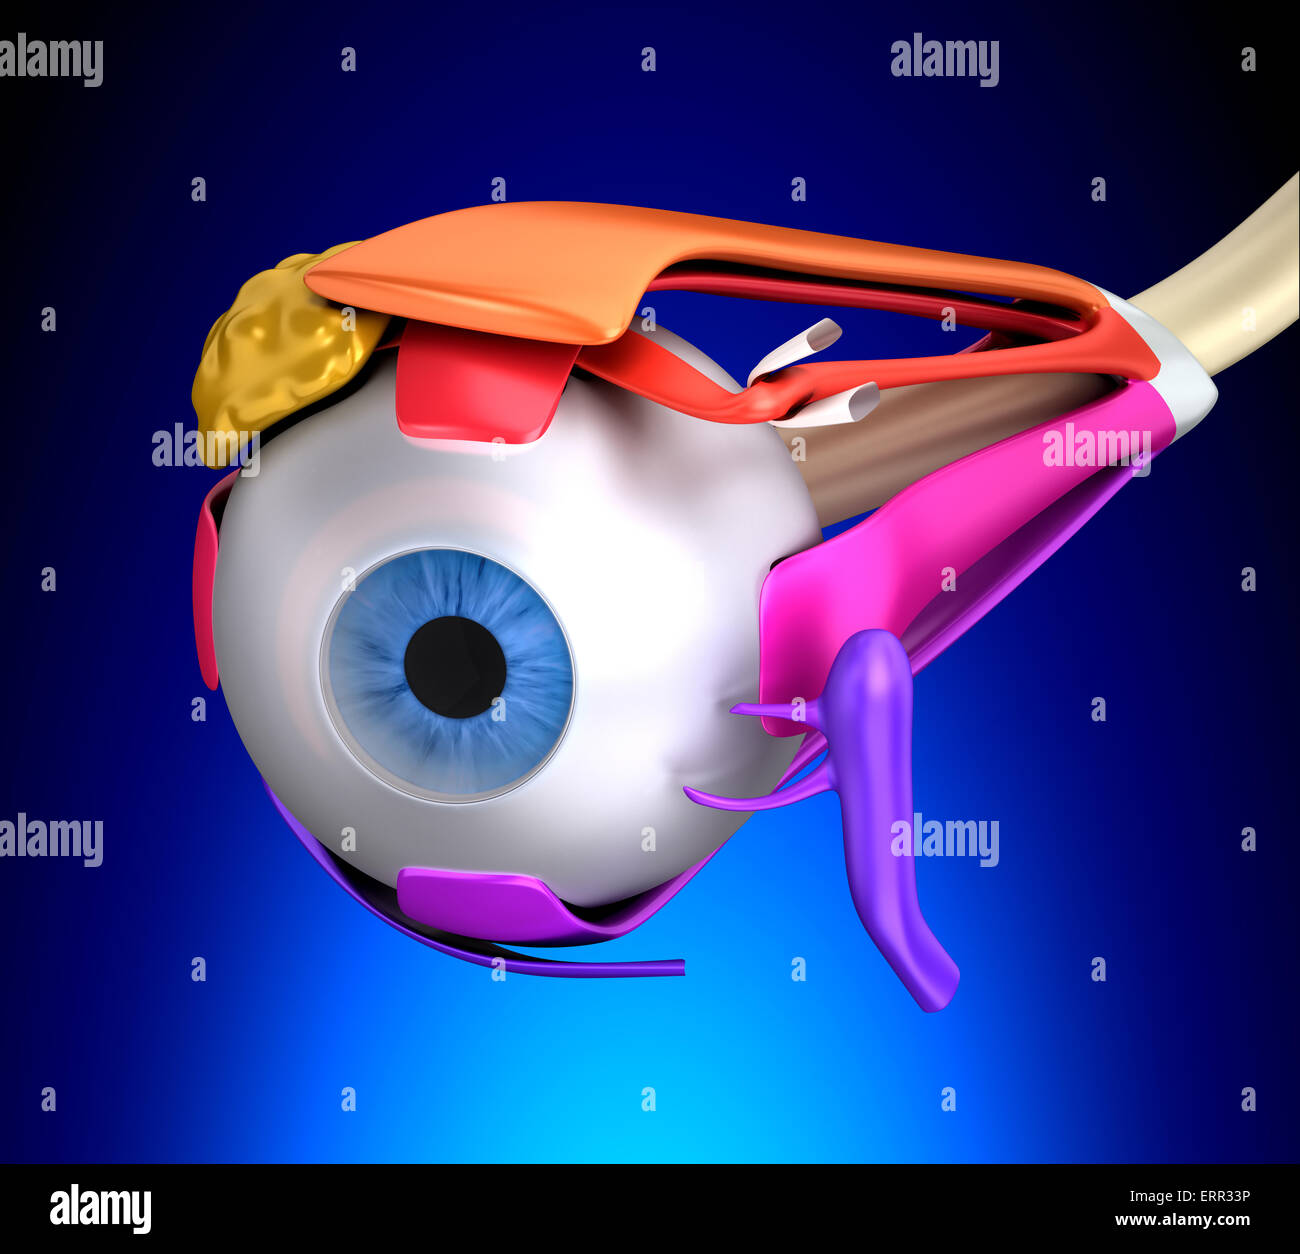 Eye Muscles Human Anatomy - Cross Section on blue background Stock ...